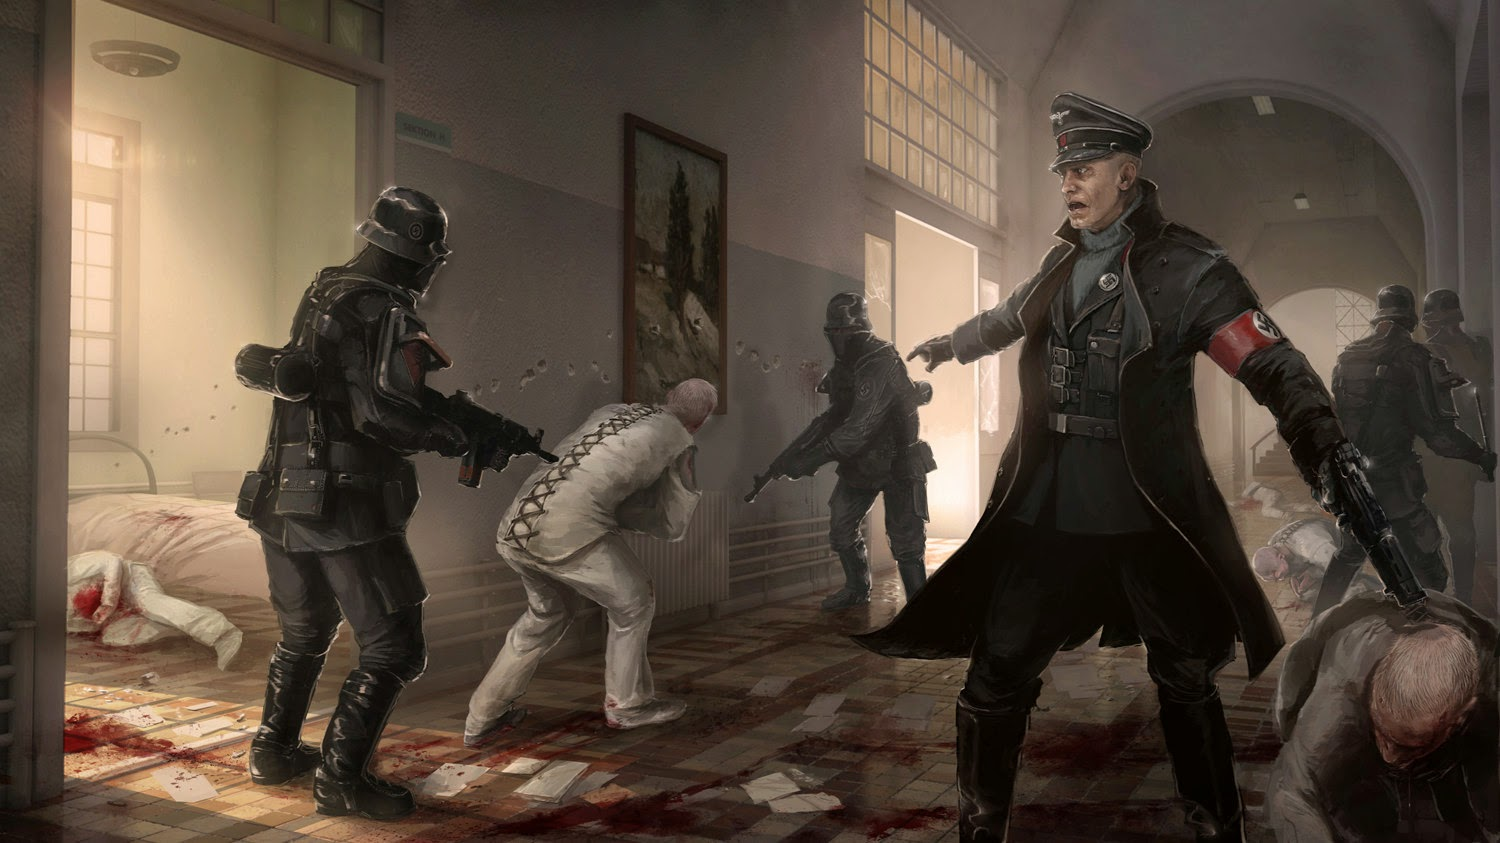 wolfenstein the new order artwork wallpapers - Wolfenstein The New Order Artwork Hd Wallpapers